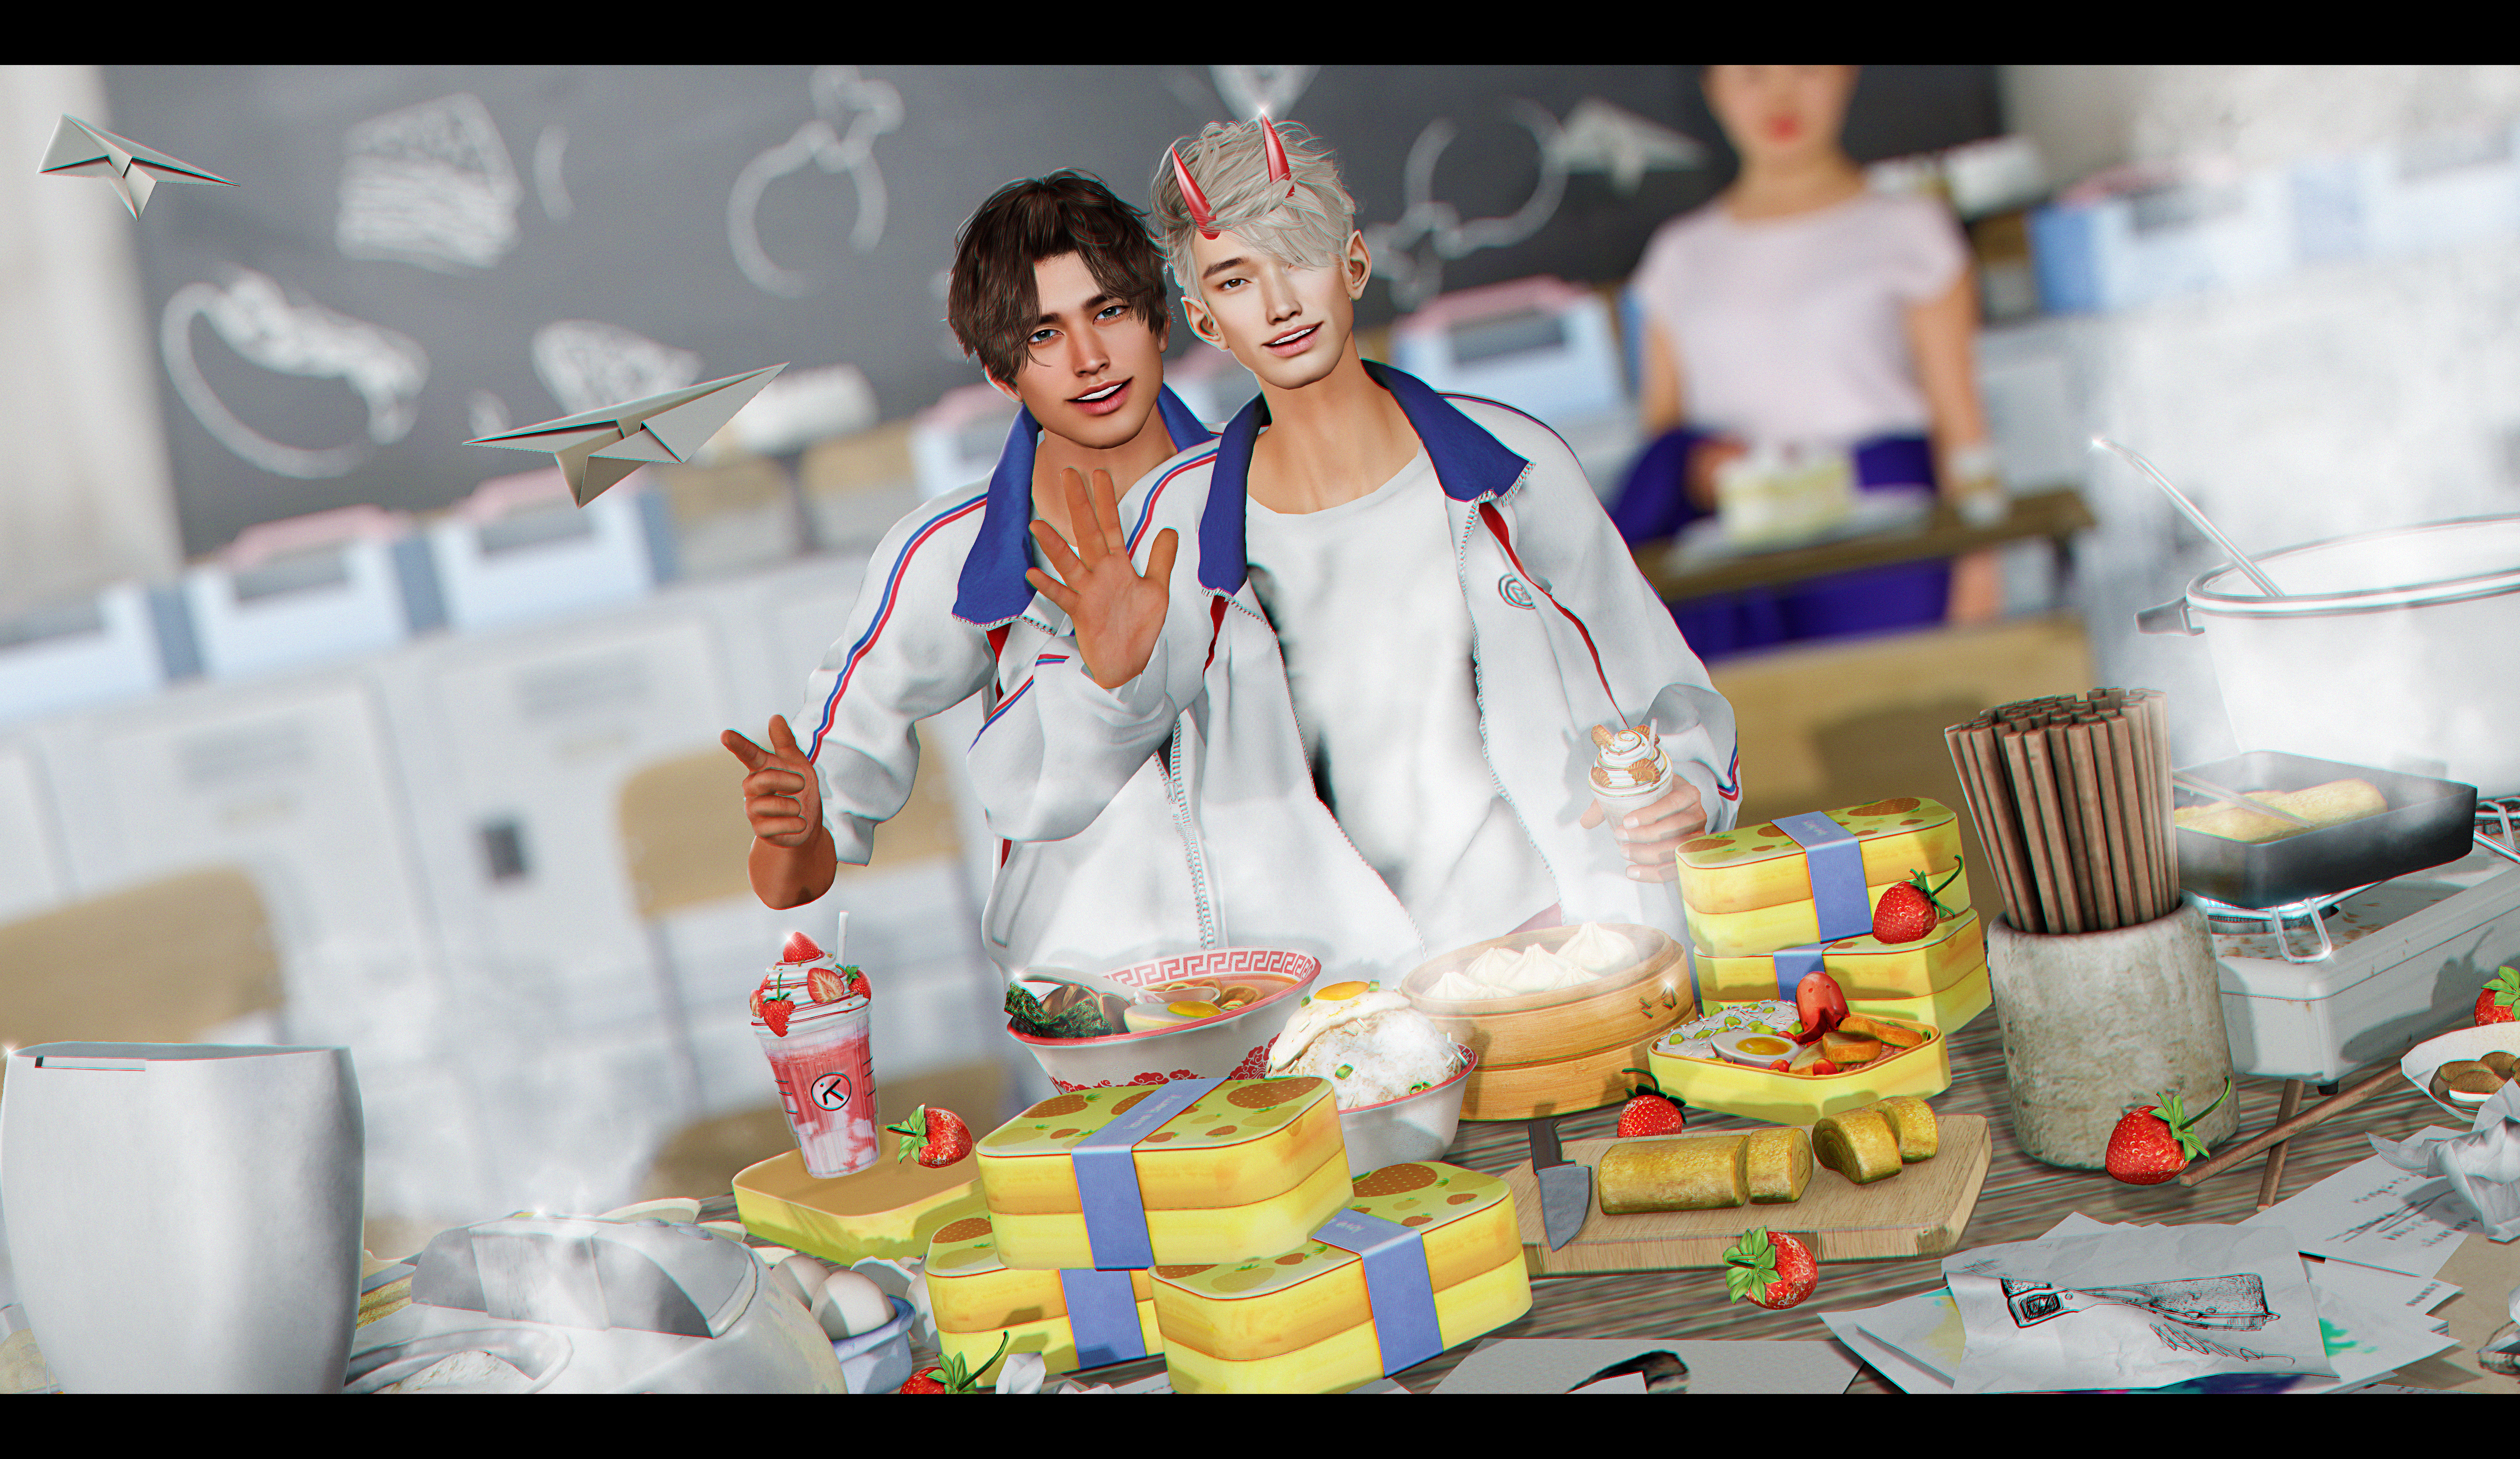 . cooking club .